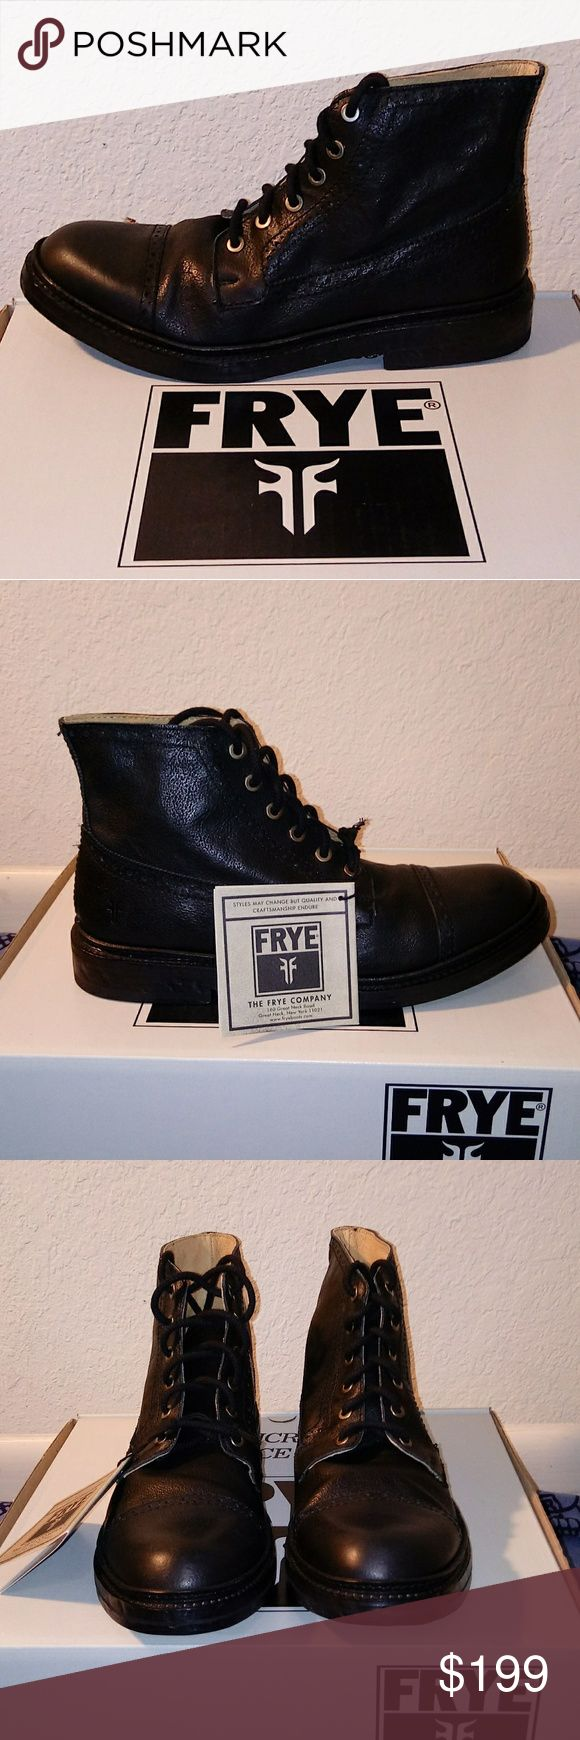 Frye Boots Brand new, never worn Frye Mens boots. Frye Shoes Boots